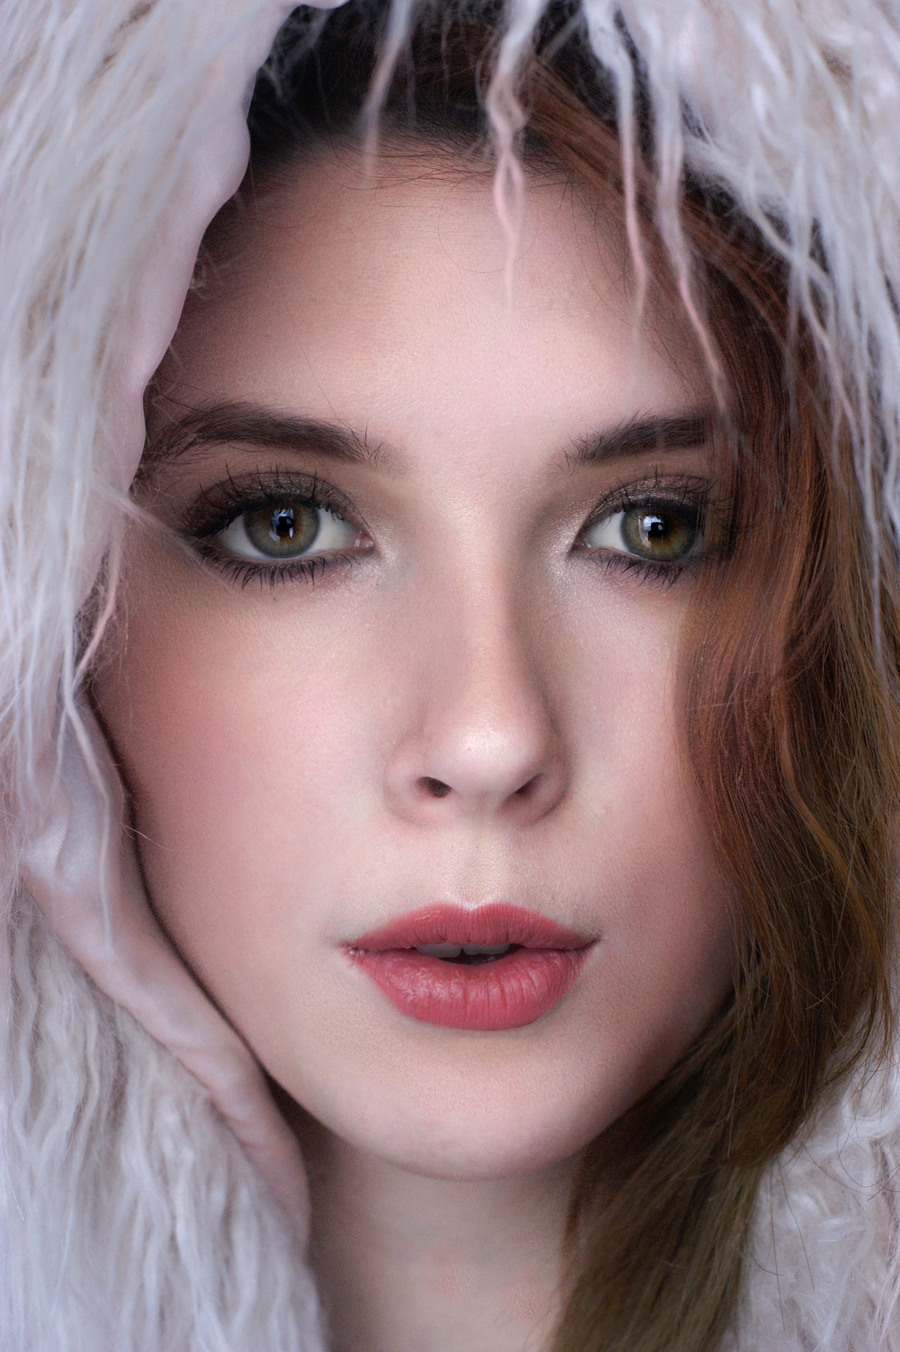 Hannah Eyes / Photography by ASBphotography, Model Twinkle Nose (Hannah Aisling) / Uploaded 6th April 2019 @ 03:30 PM